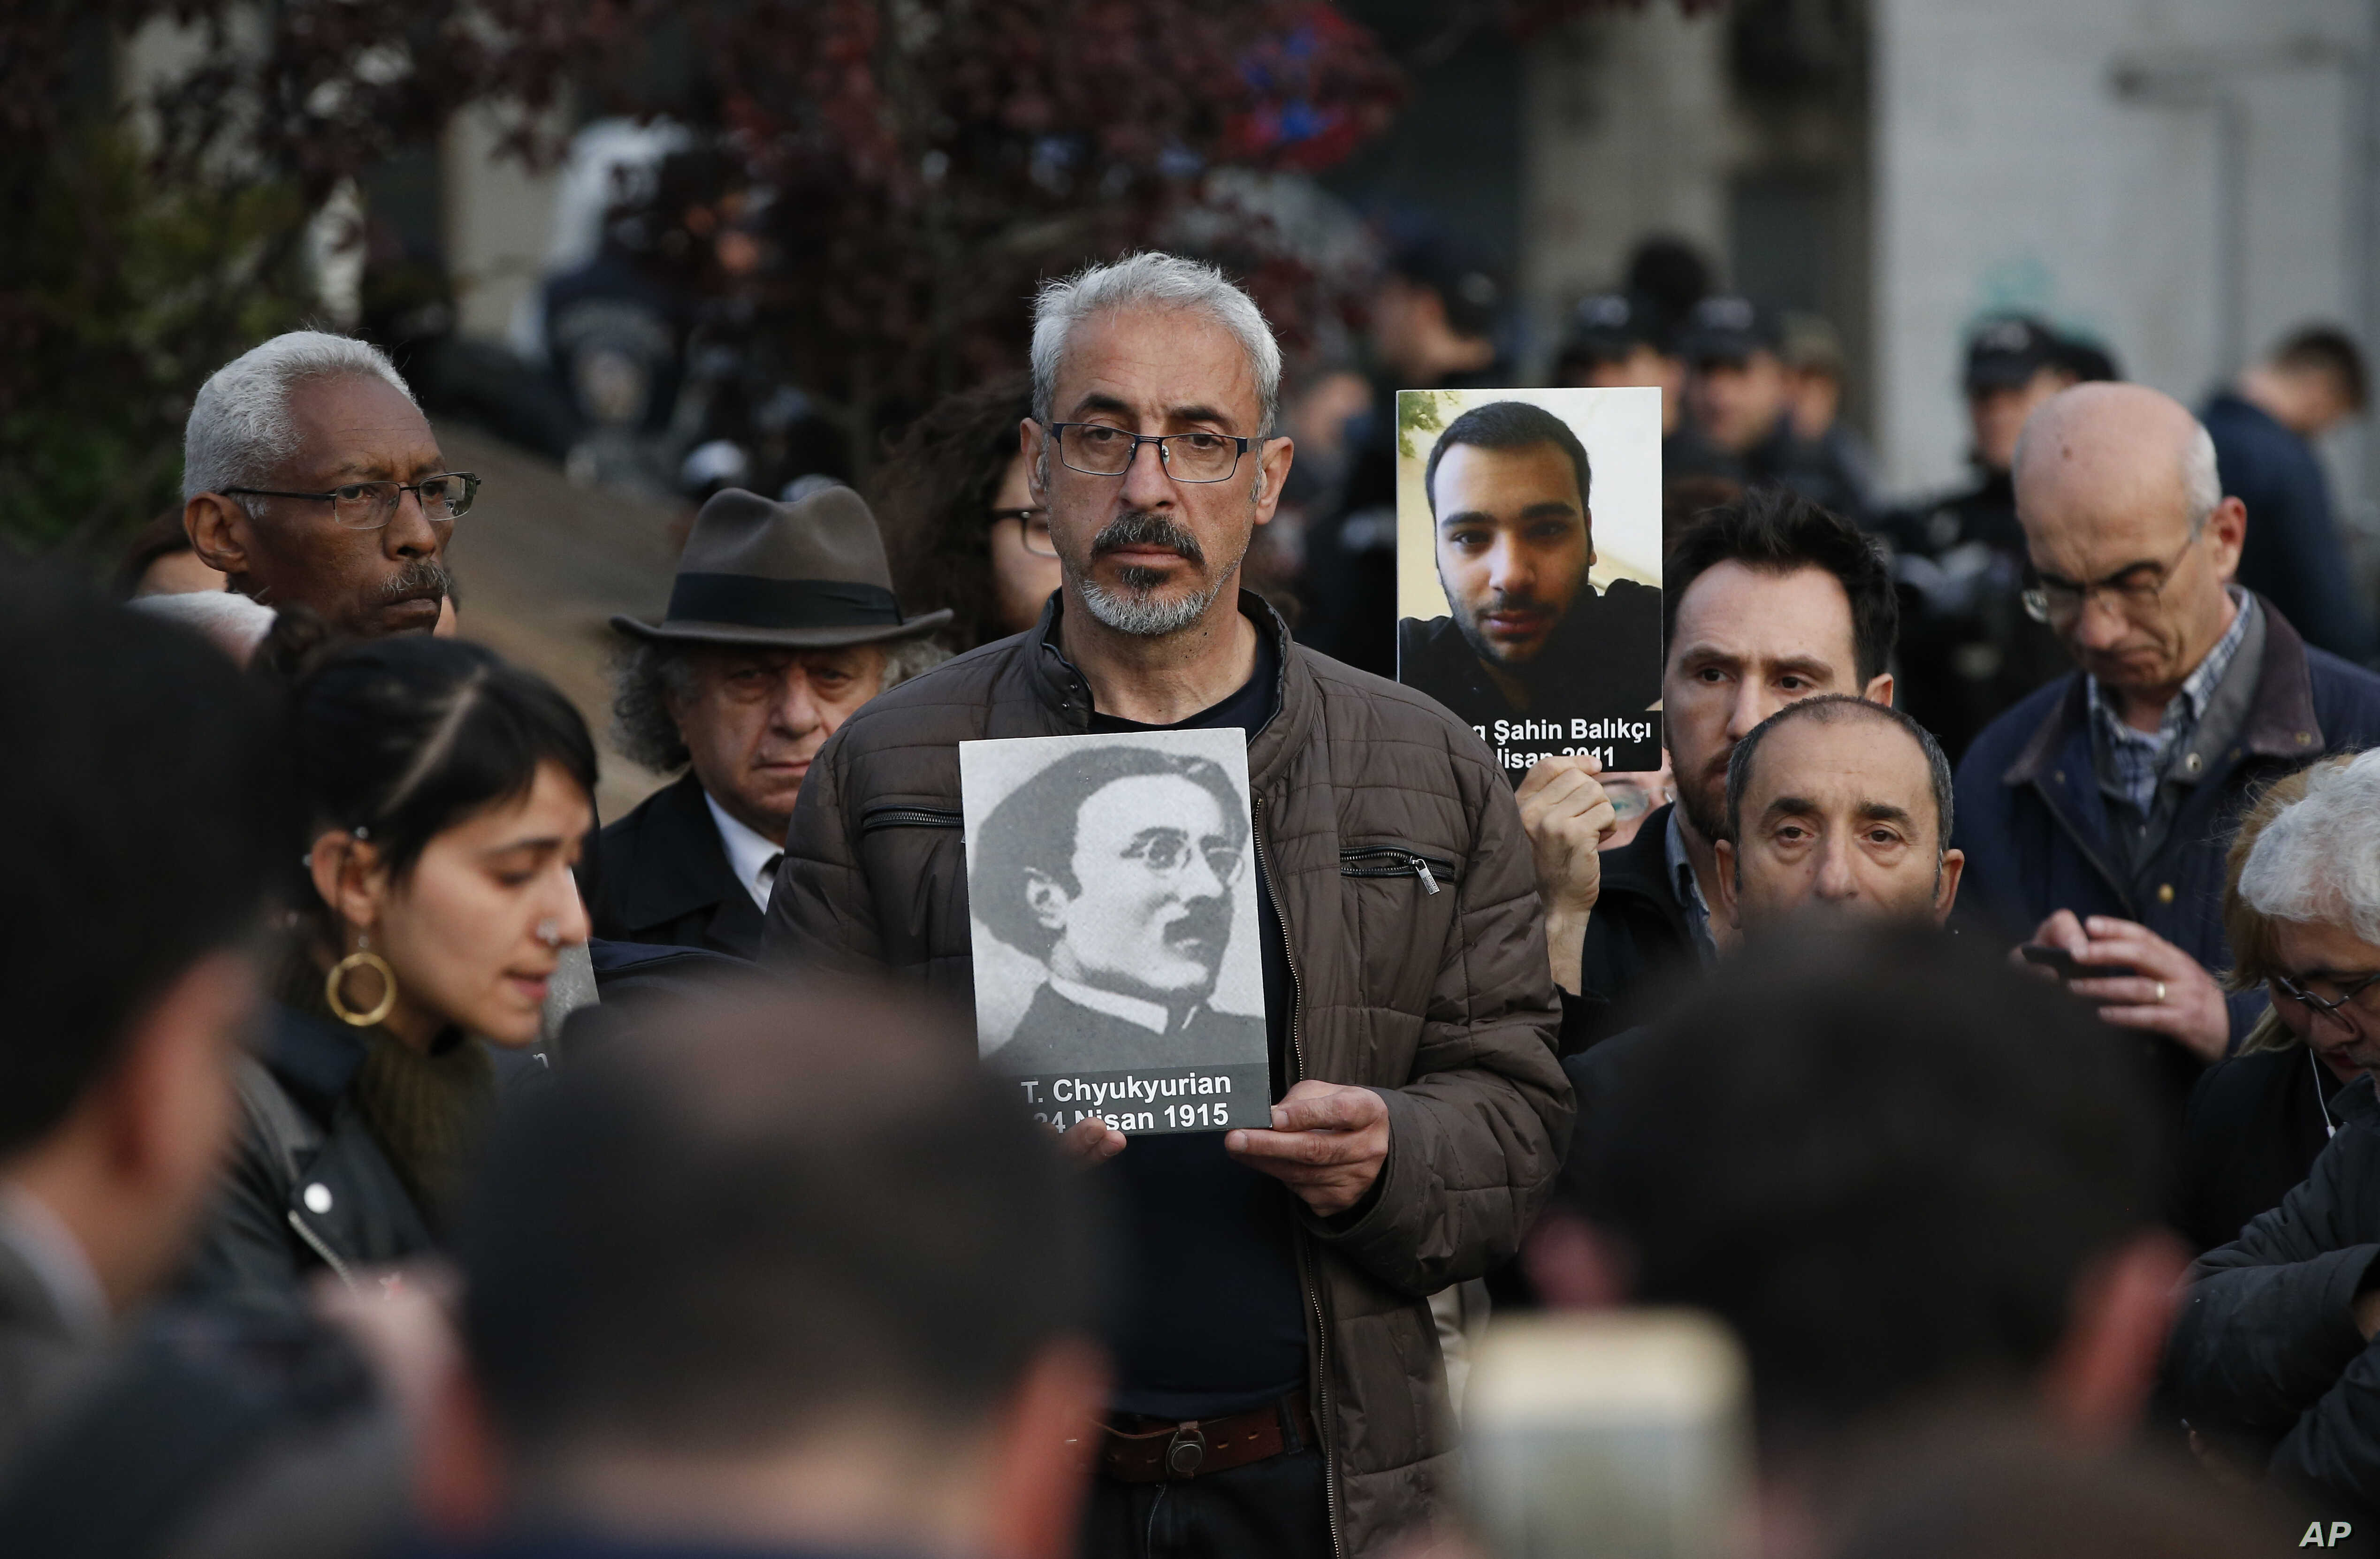 Turkey Furious at France, US Over Armenian Remembrance